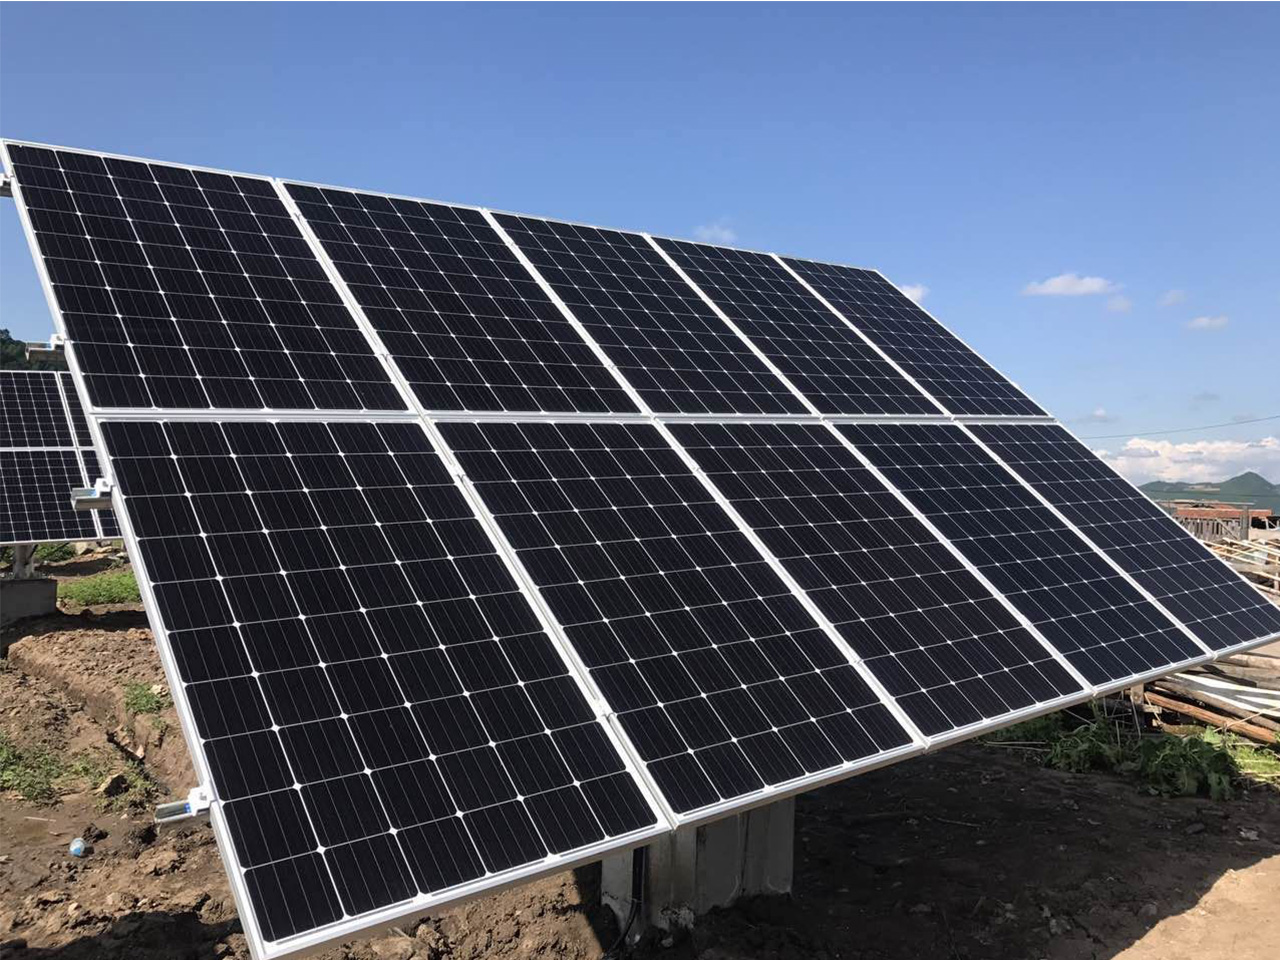 2017.06.20<br/> 72KW grid system of Daxing Village, Chunyang Town, Wangqing County